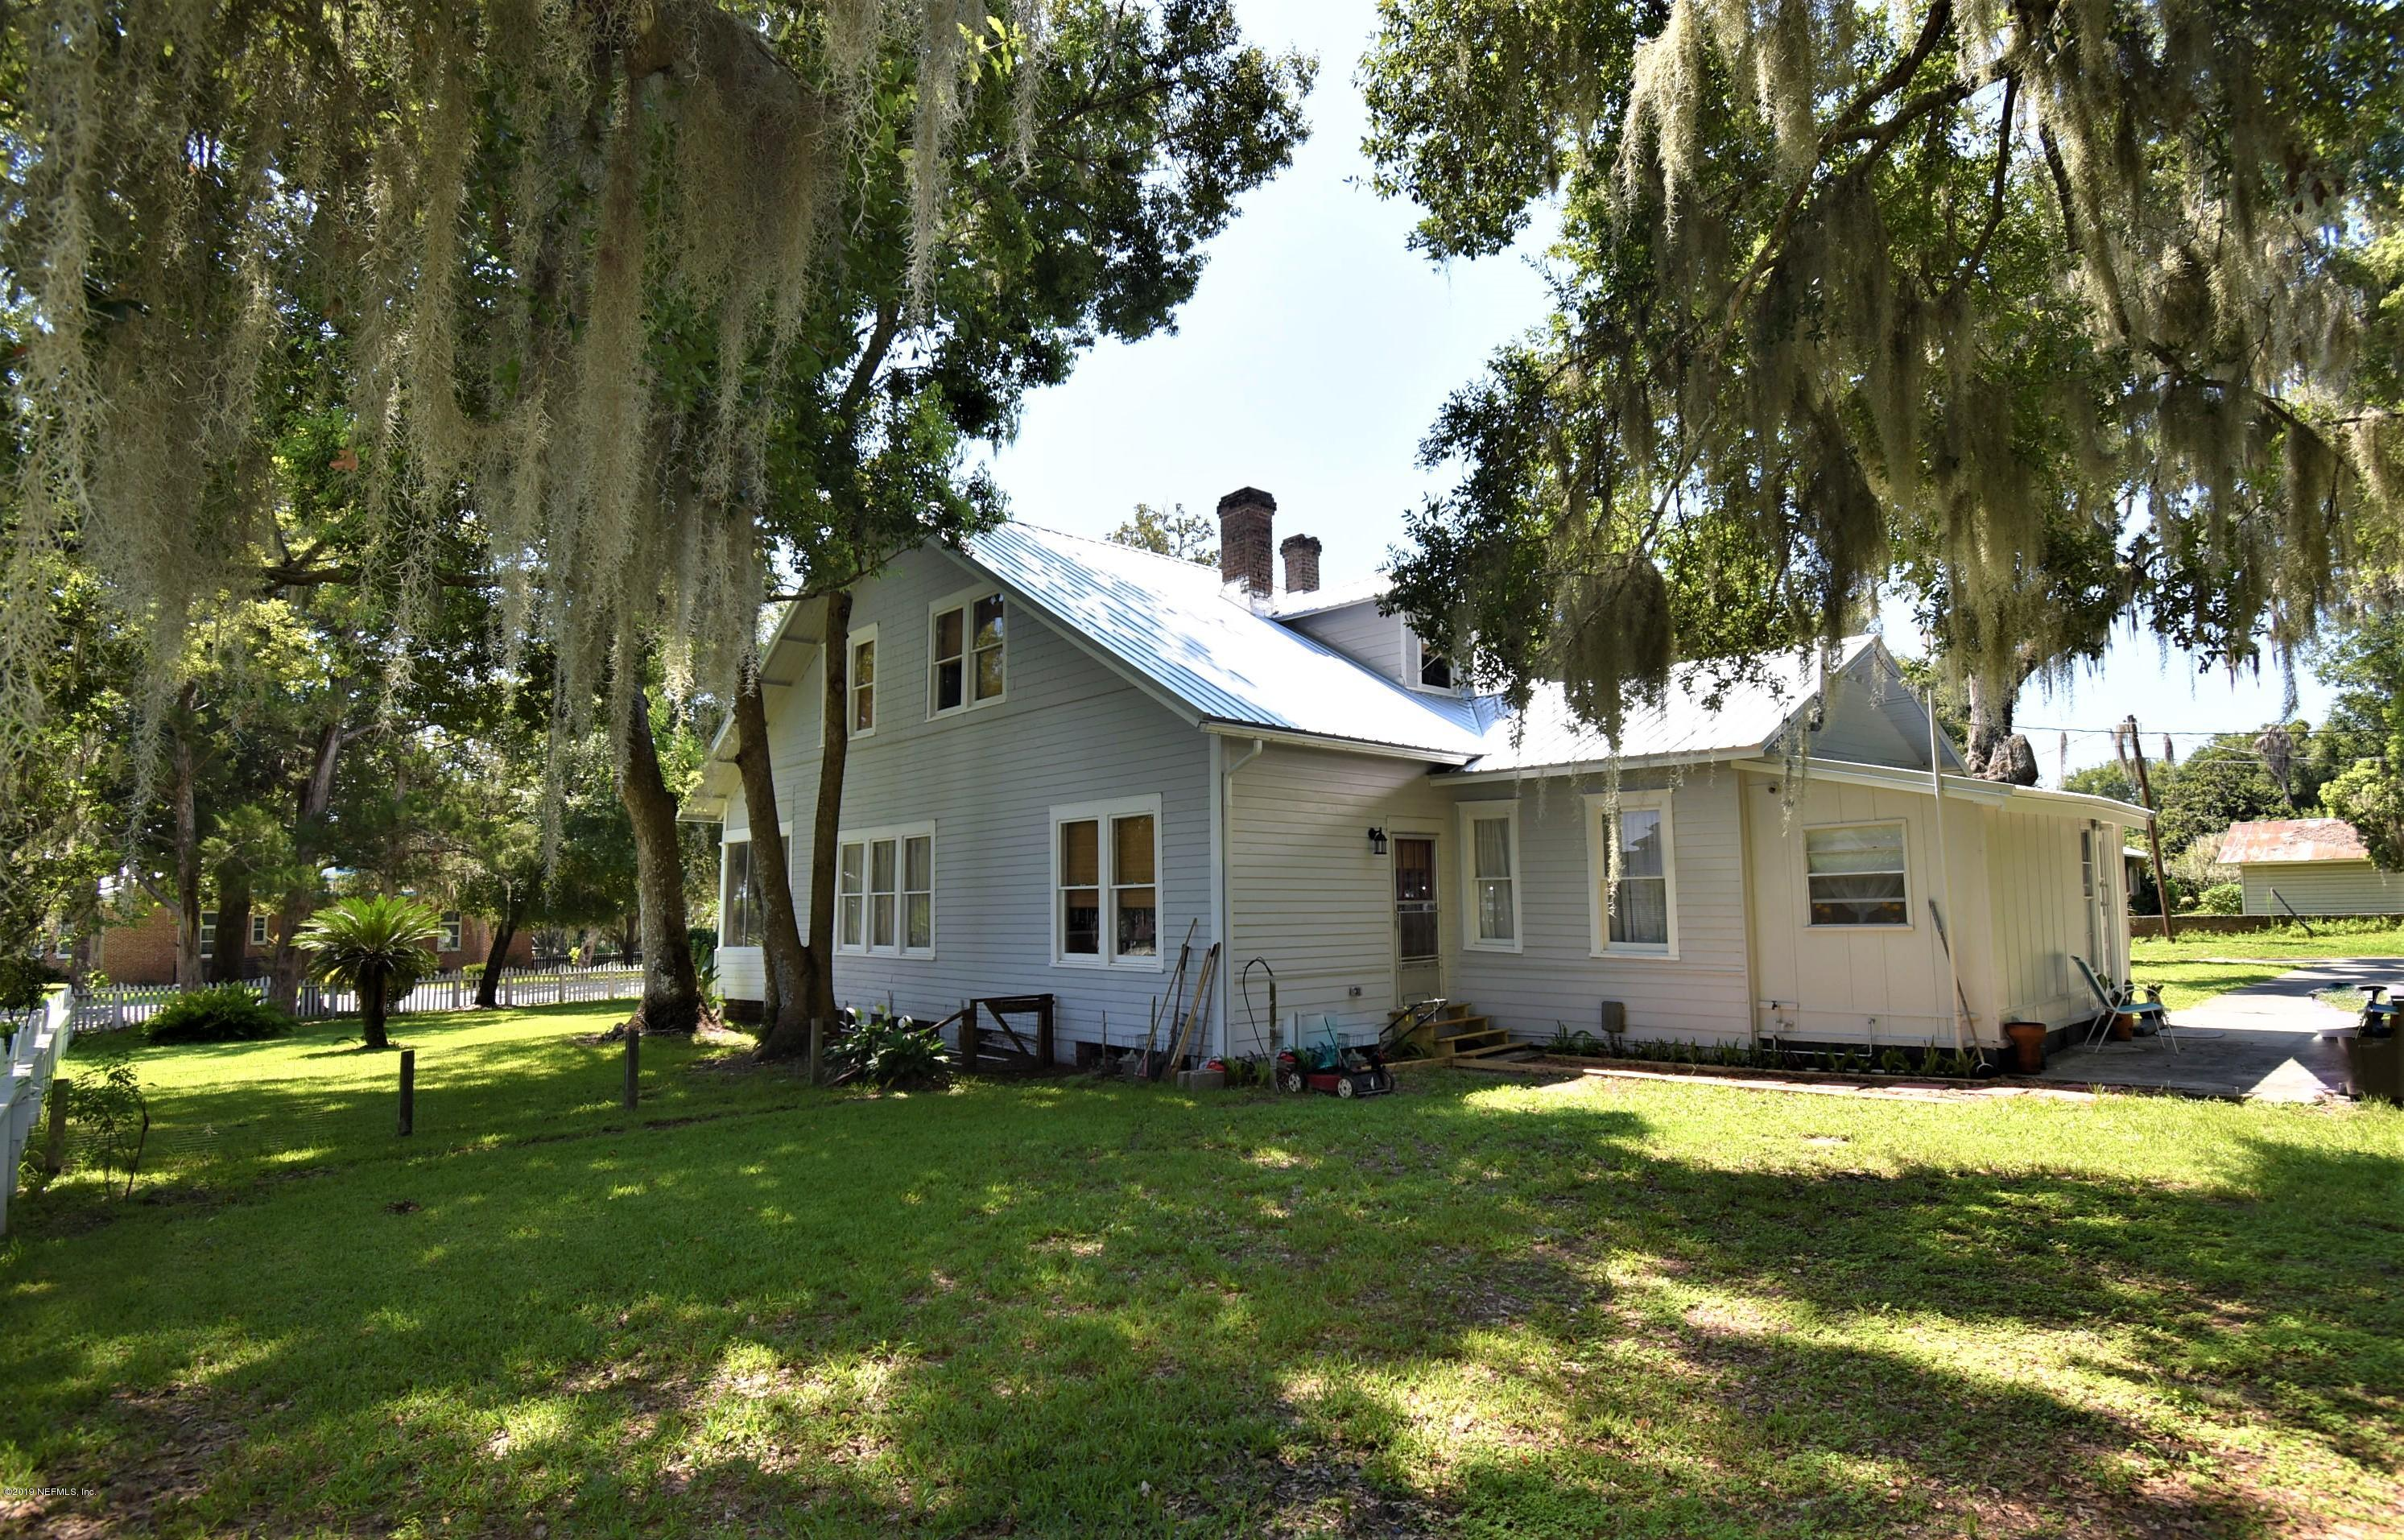 128 PROSPECT, CRESCENT CITY, FLORIDA 32112, 5 Bedrooms Bedrooms, ,2 BathroomsBathrooms,Residential,For sale,PROSPECT,1073879